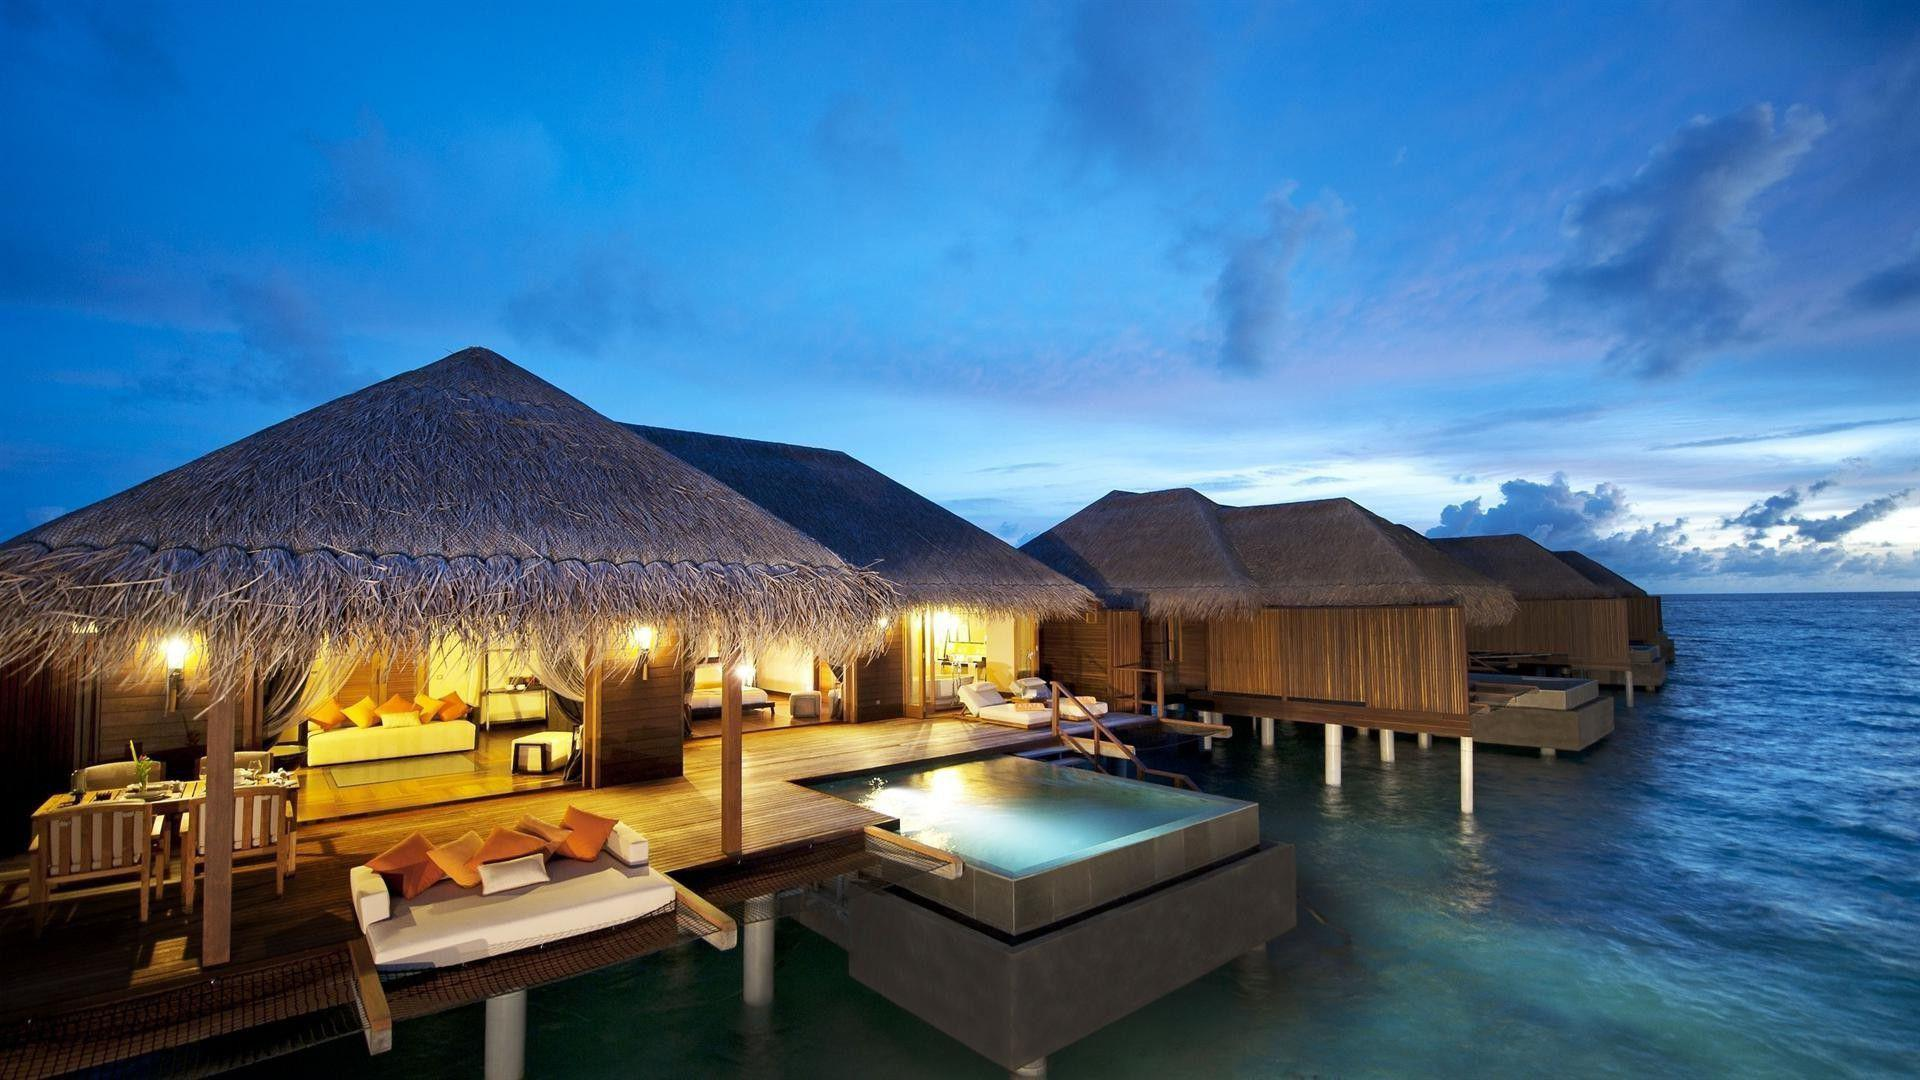 best holiday Holiday packages in india - book holidays in india, vacation tour packages & weekend gateways with yatracom, get travel deals on holiday tour packages and save more top international holiday destinations thailand maldives europe dubai in 2014 it was awarded as best domestic tour.